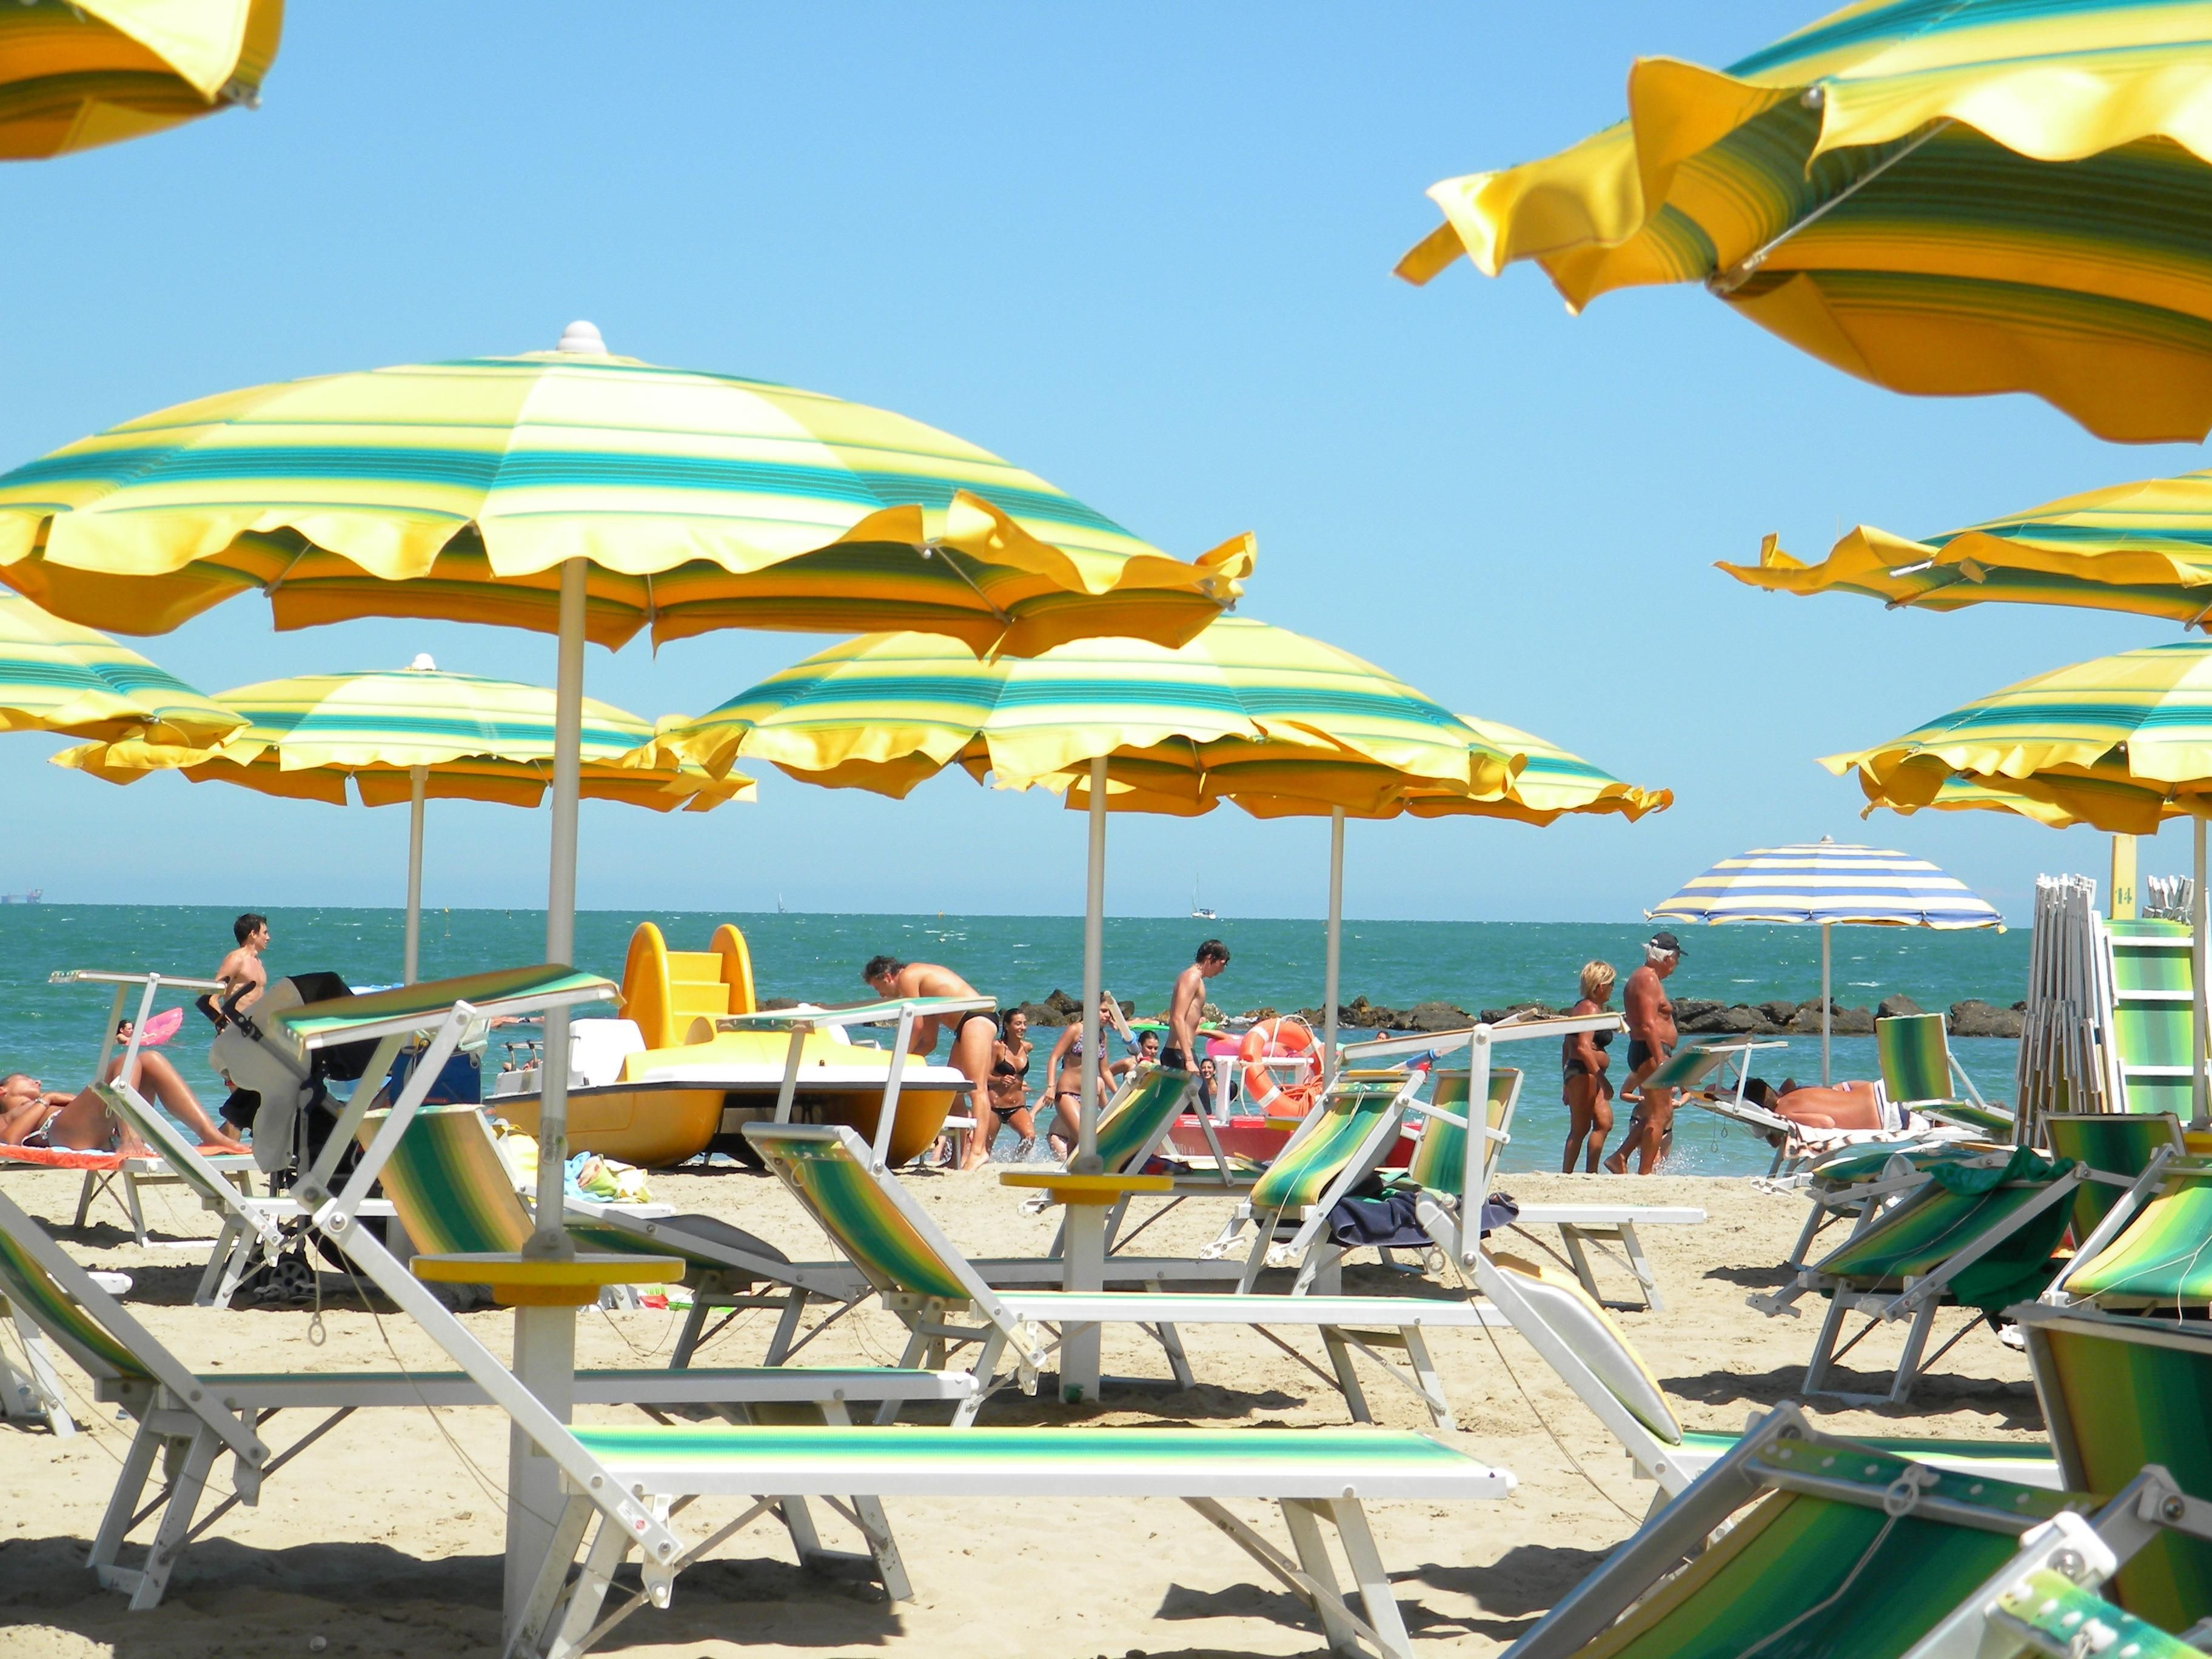 Bagno 14 Michele (Rimini, Italy): Top Tips Before You Go ...